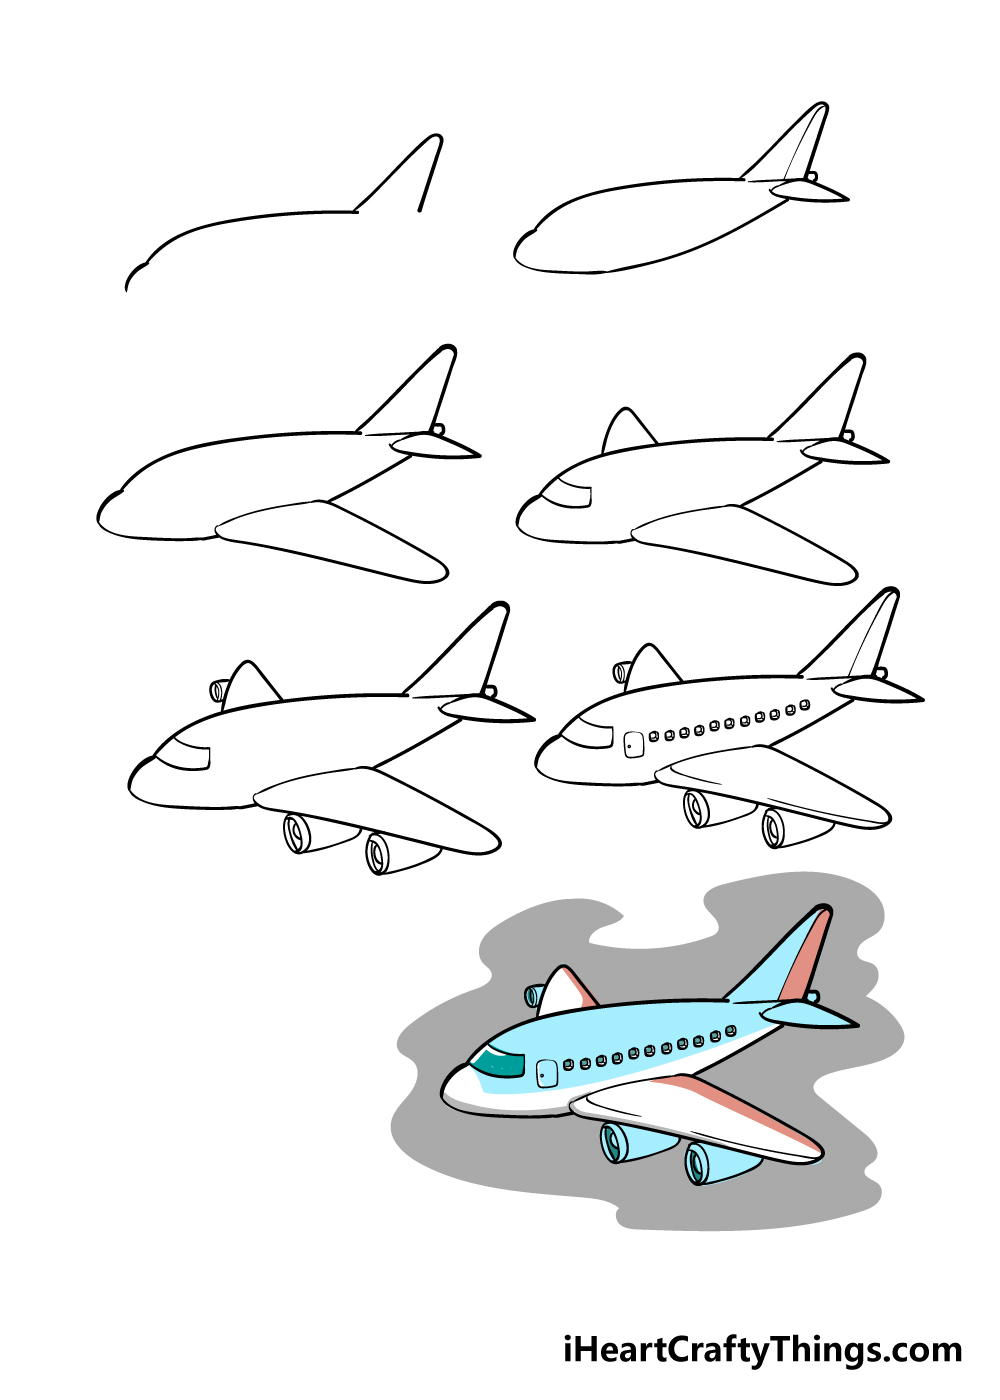 how to draw airplane in 7 steps